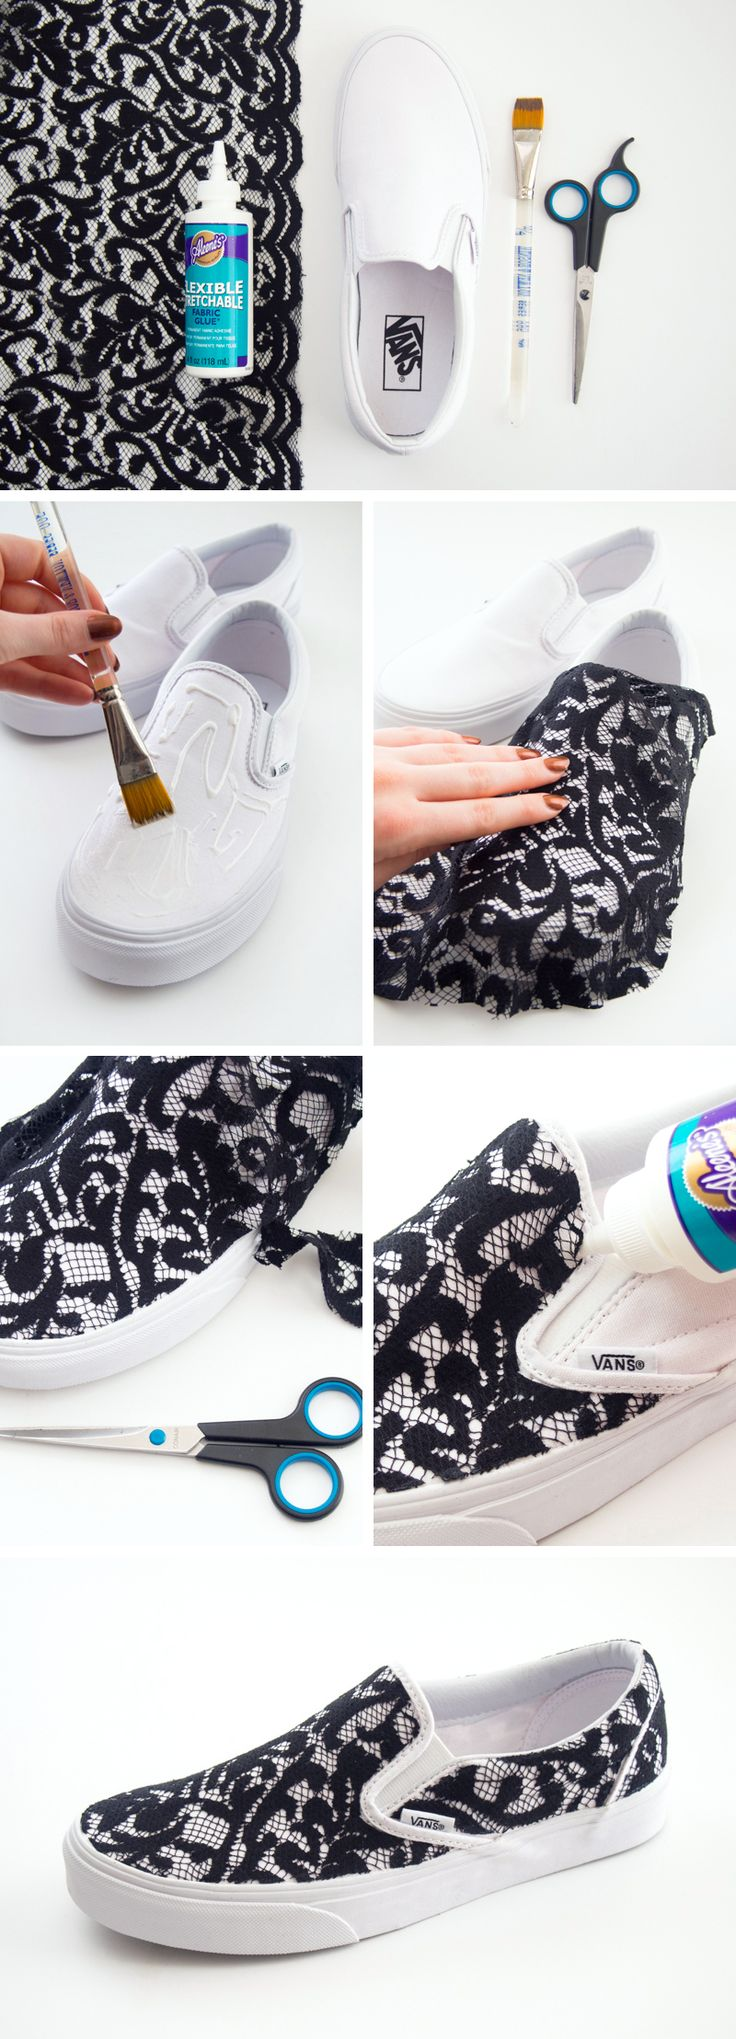 DIY: lace slip-on sneakers: Diy Shoes, Ideas, Diy Lace, Diy Crafts, Diy Sneakers, Lace Vans, Lace Shoes, Diy Projects, Lace Sneakers